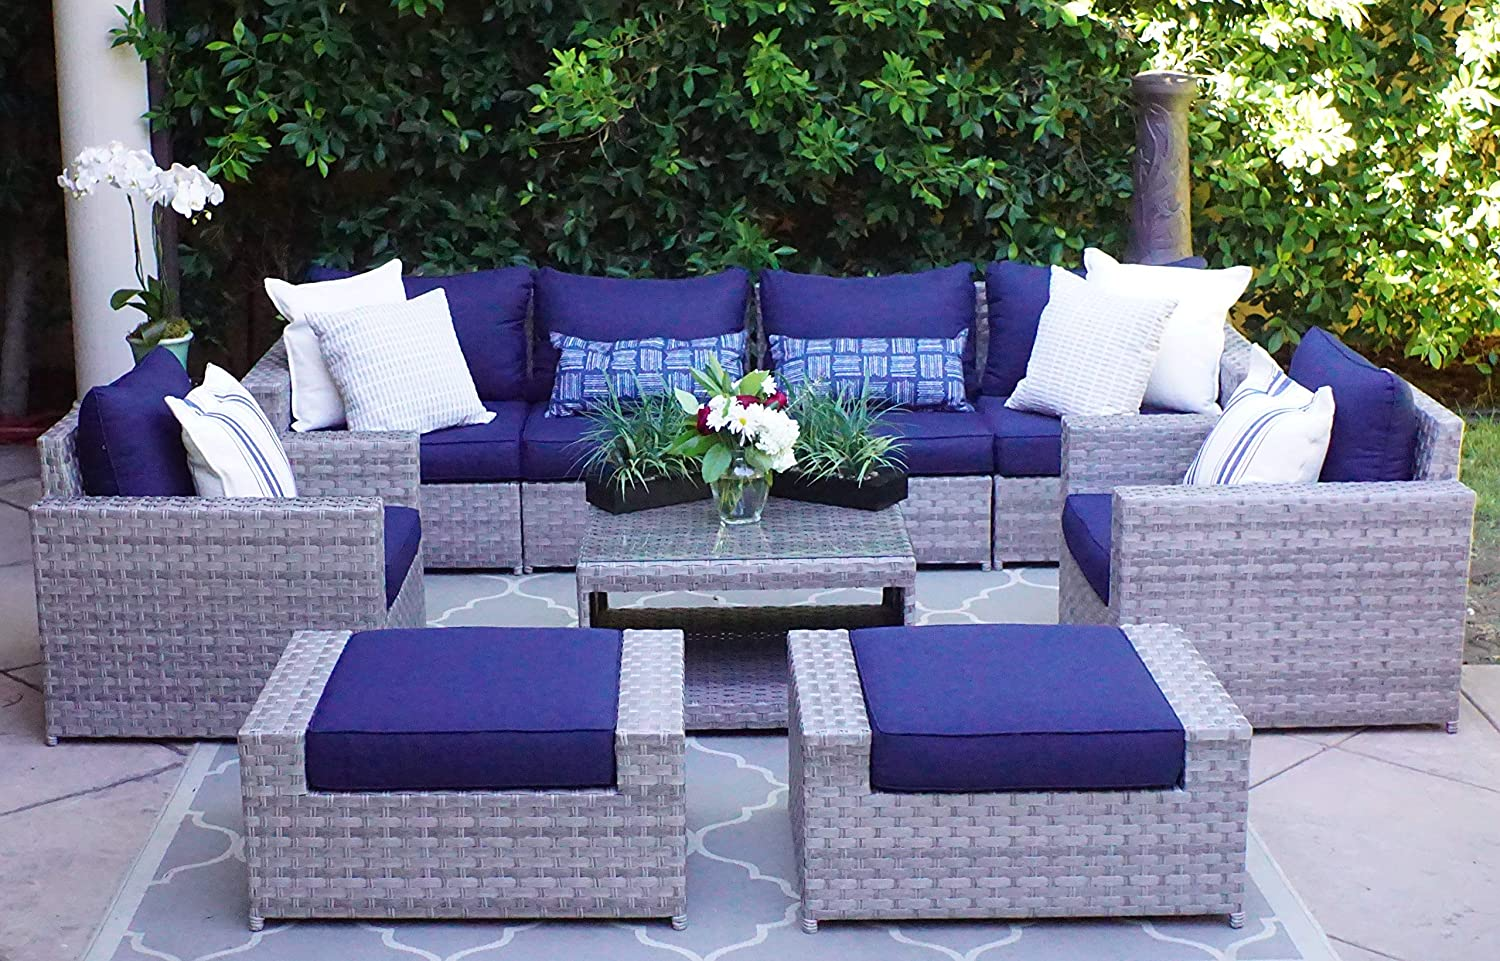 SunHaven Resin Wicker Outdoor Patio Furniture Set – 9 Piece Conversation Sectional Premium All Weather Gray Rattan Wicker, Aluminum Frame with Deluxe Fade Resistant Olefin Cushions